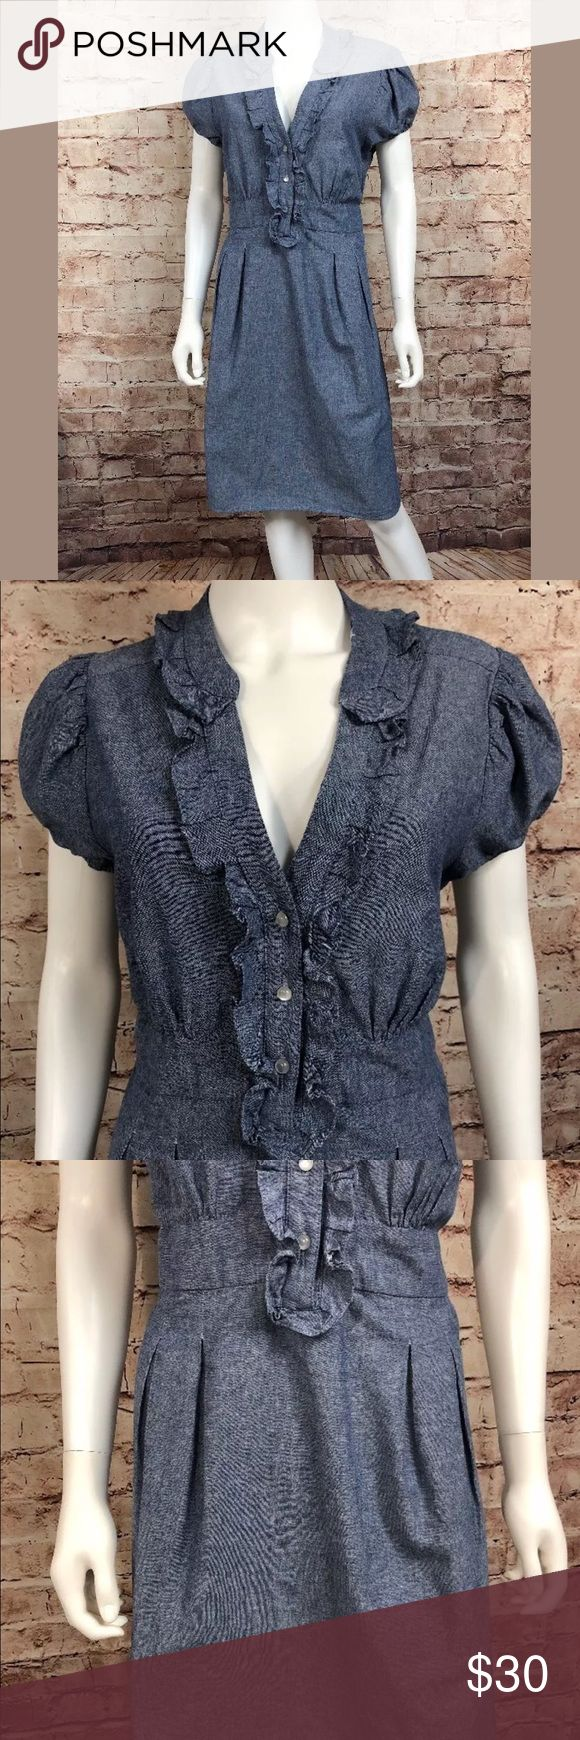 """Lilly Lou Large Denim Chambray Shirt Dress Ruffle Like new condition.  Clean and smoke free.  Chest 21"""" across front, underarm to underarm High waist 20"""" across front  Length 39"""" from shoulder seam to bottom  W27  Lilly Lou Large Denim Chambray Shirt Dress Empire Blue Ruffle lilly lou Dresses Midi"""